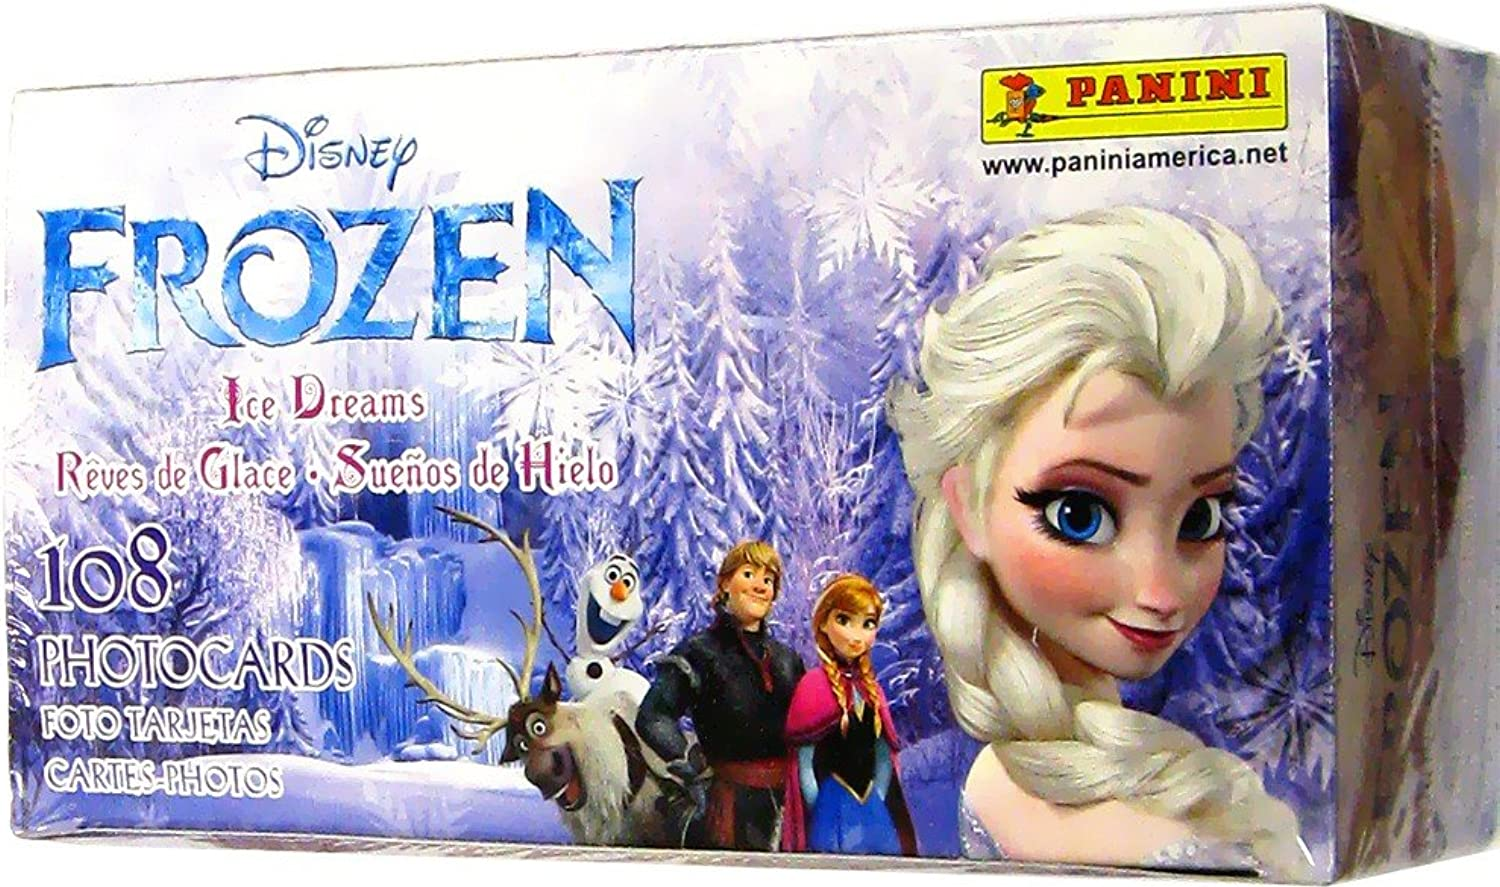 Disney Frozen Ice Dreams 4x6 inch Photocards Box of 24 Unopened Packs, Panini